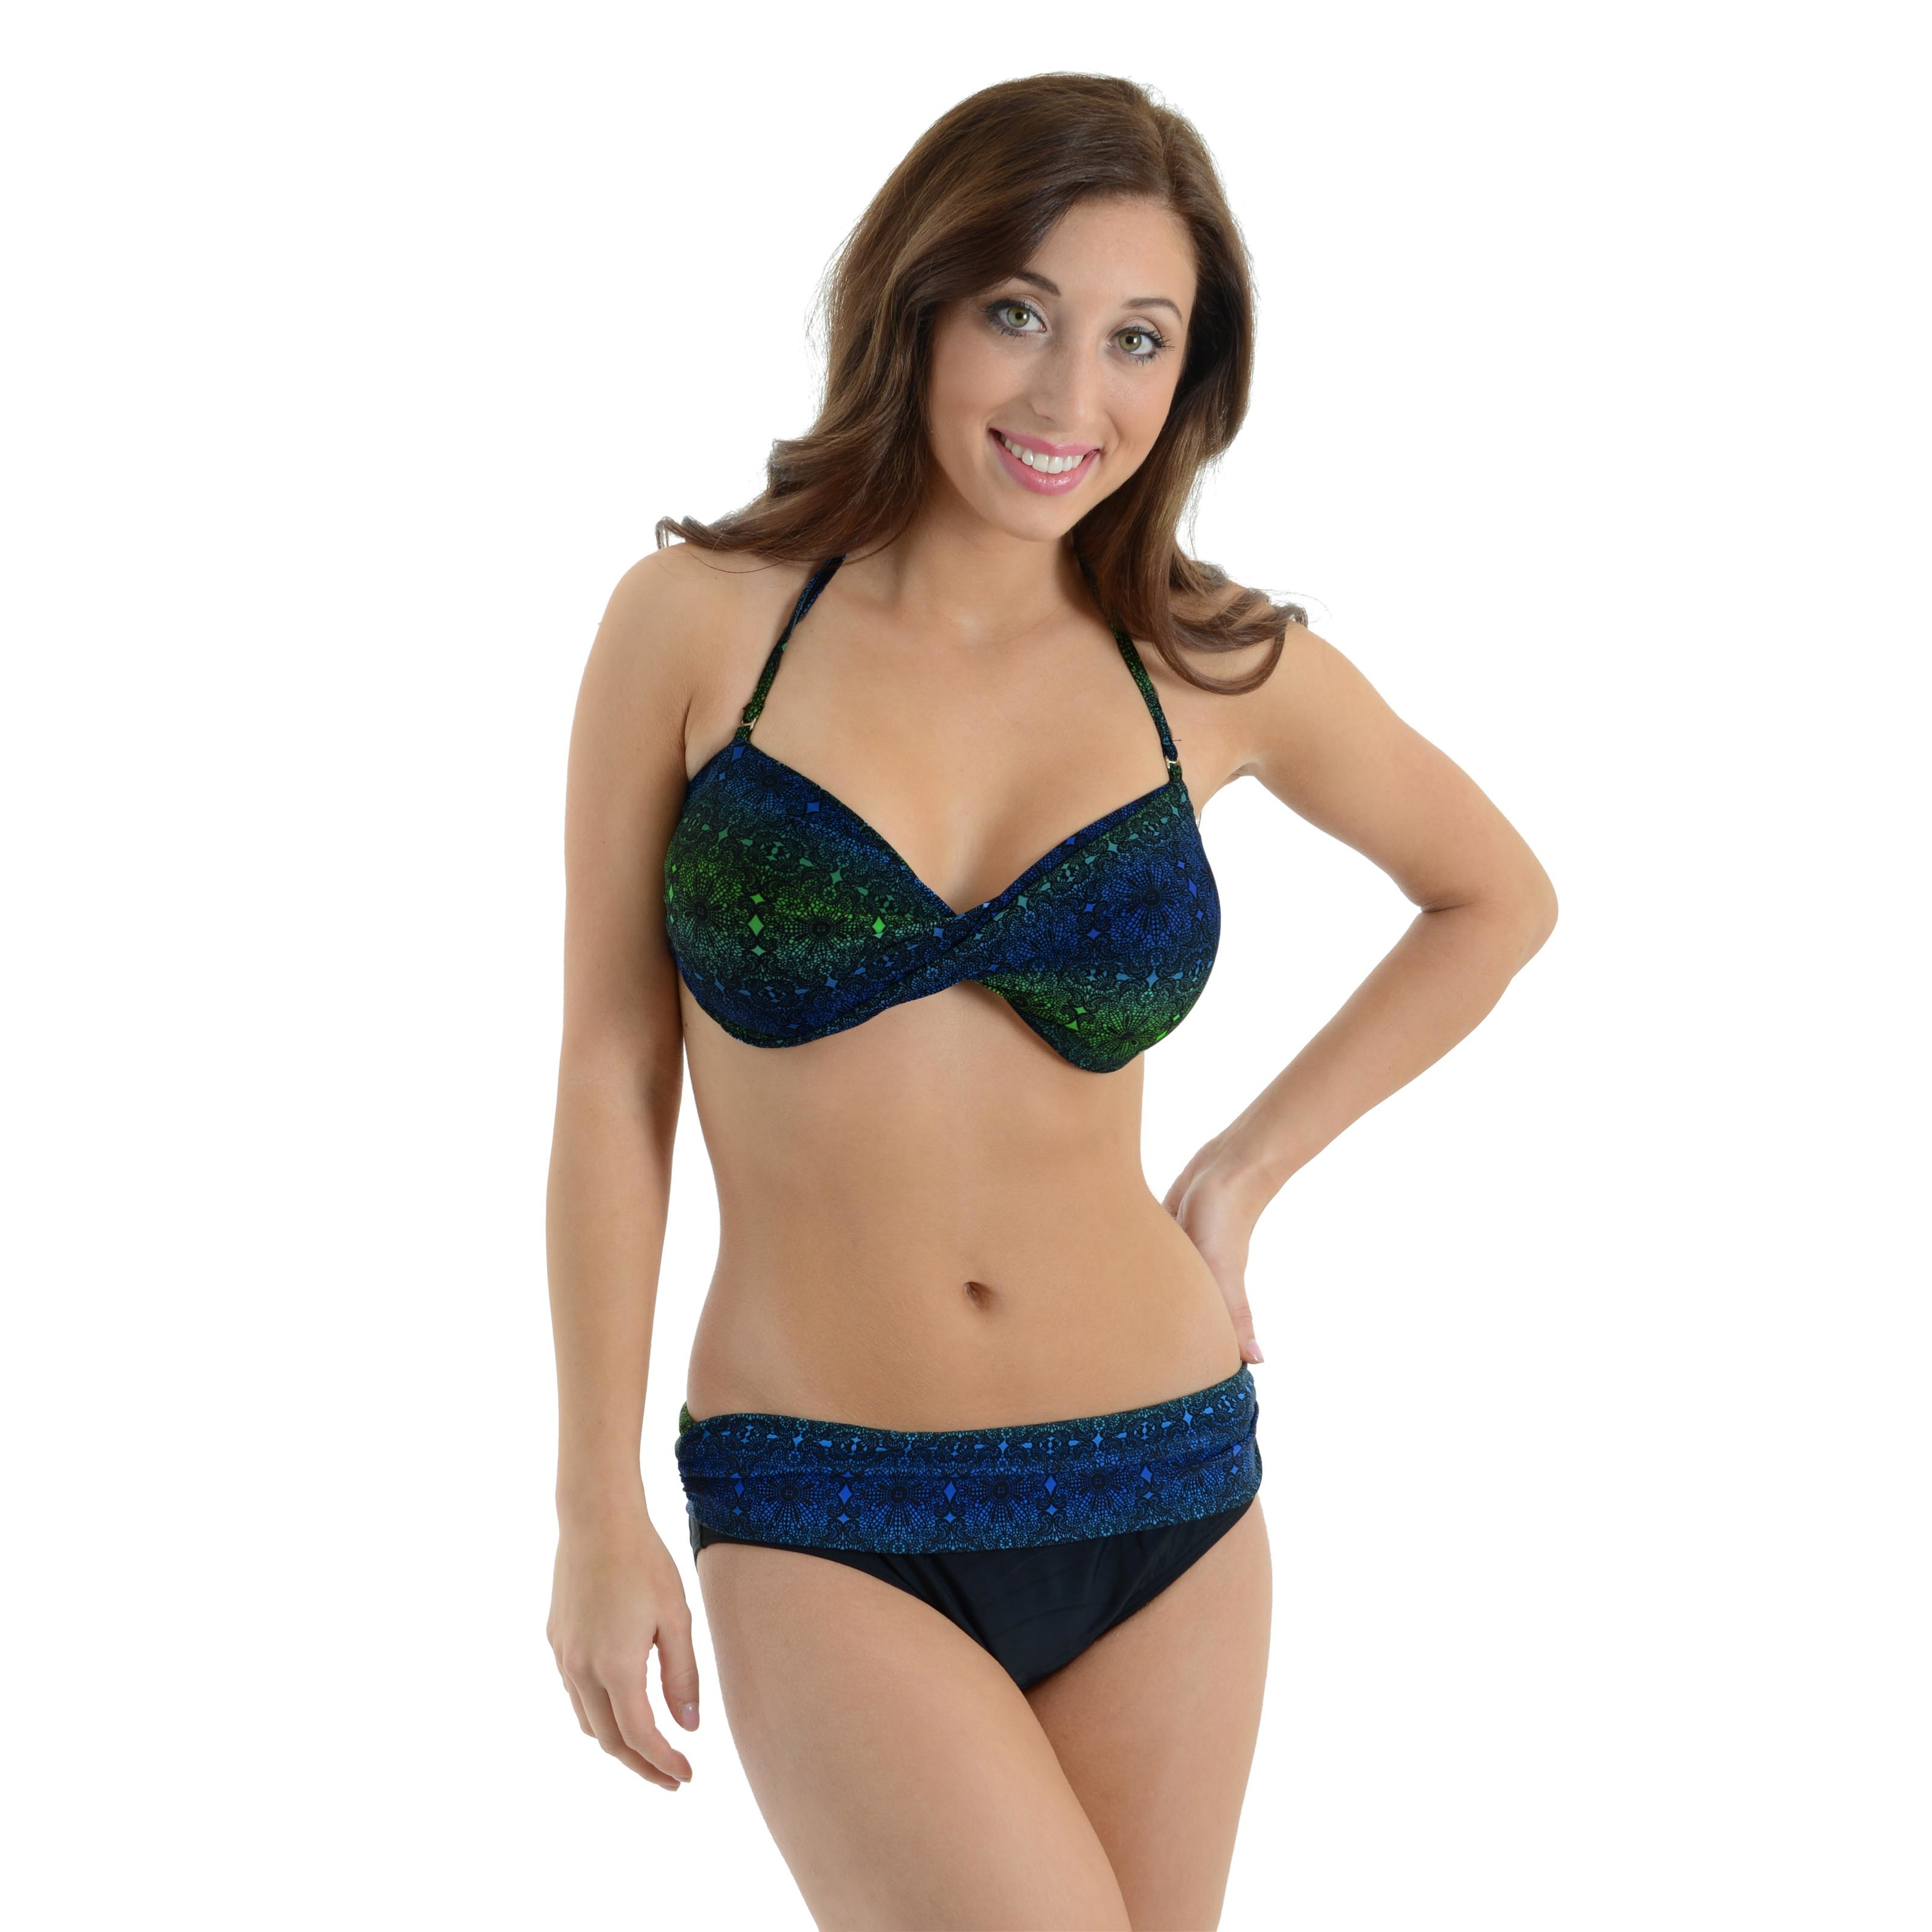 Caribbean Sand Women's 2 Piece Swimsuit Set Black Blue Green Bandeau Top